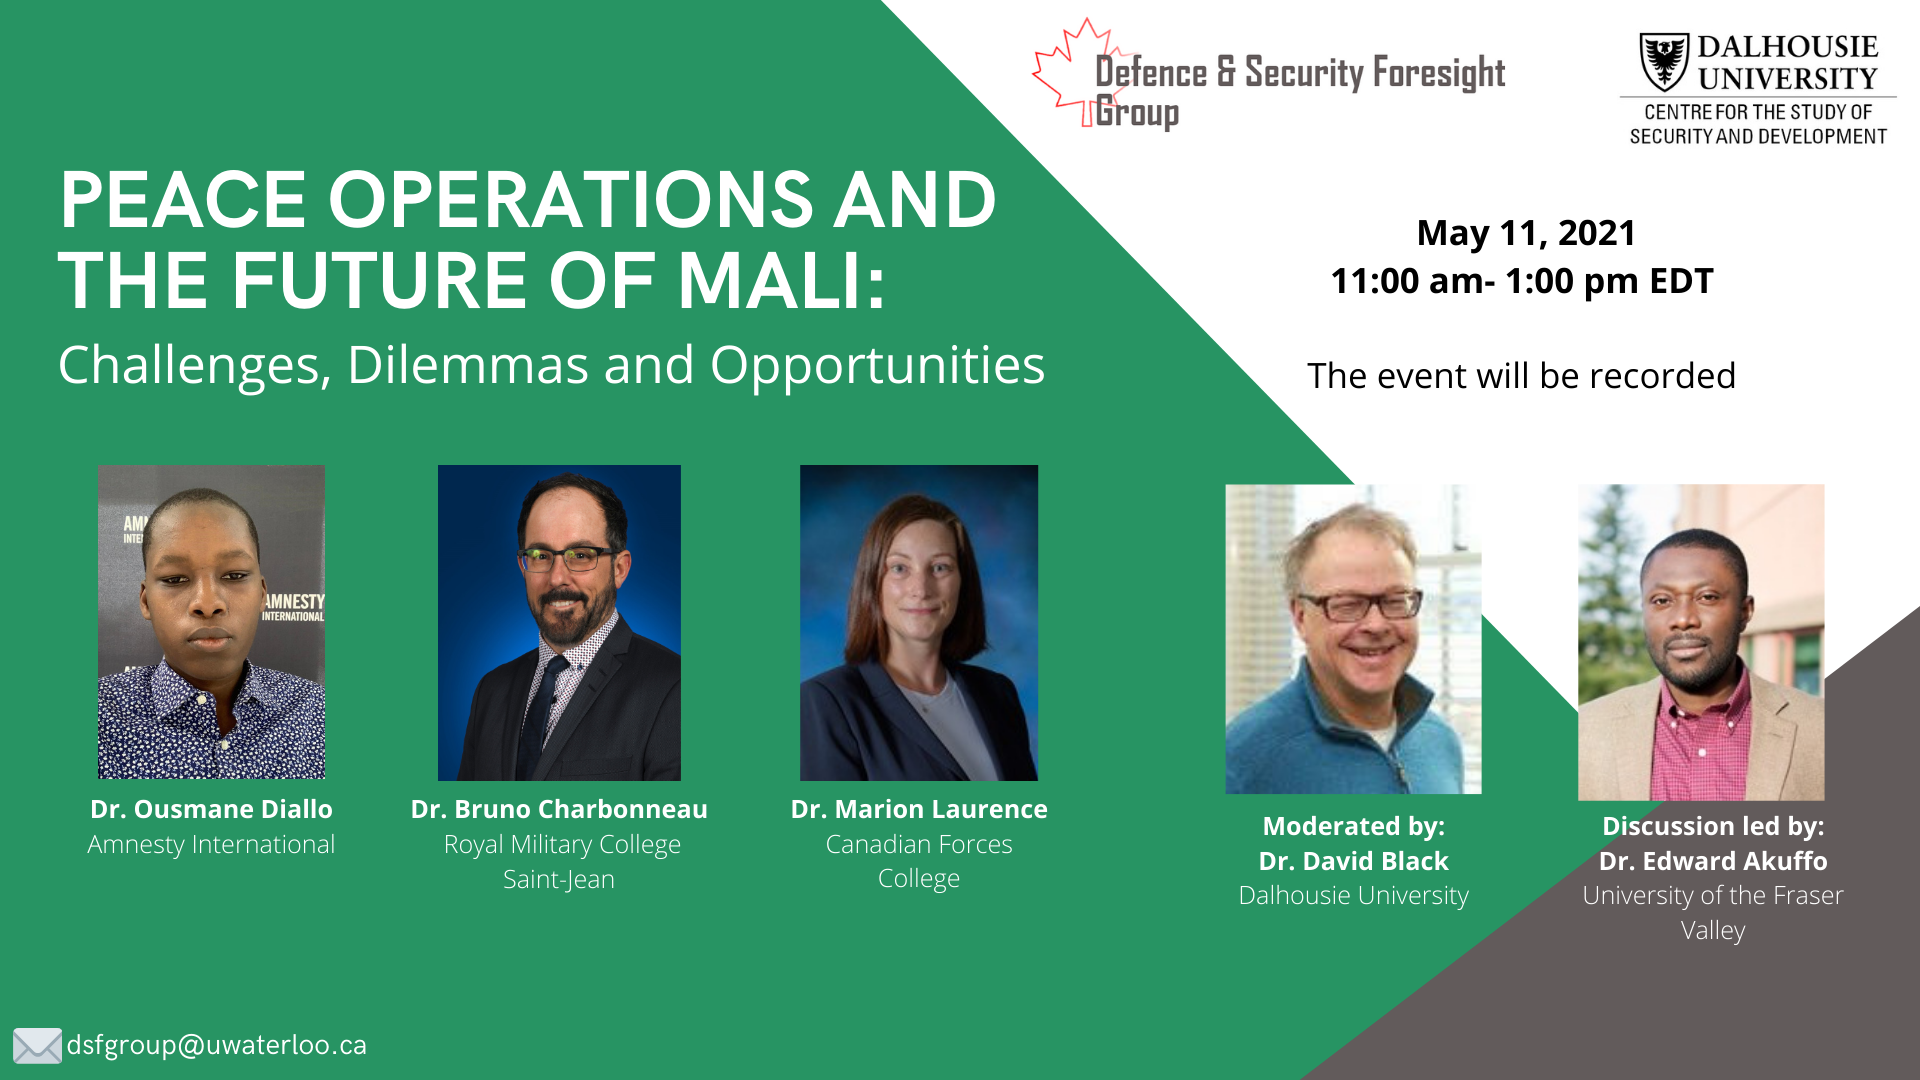 Peace operations and the future of Mali event